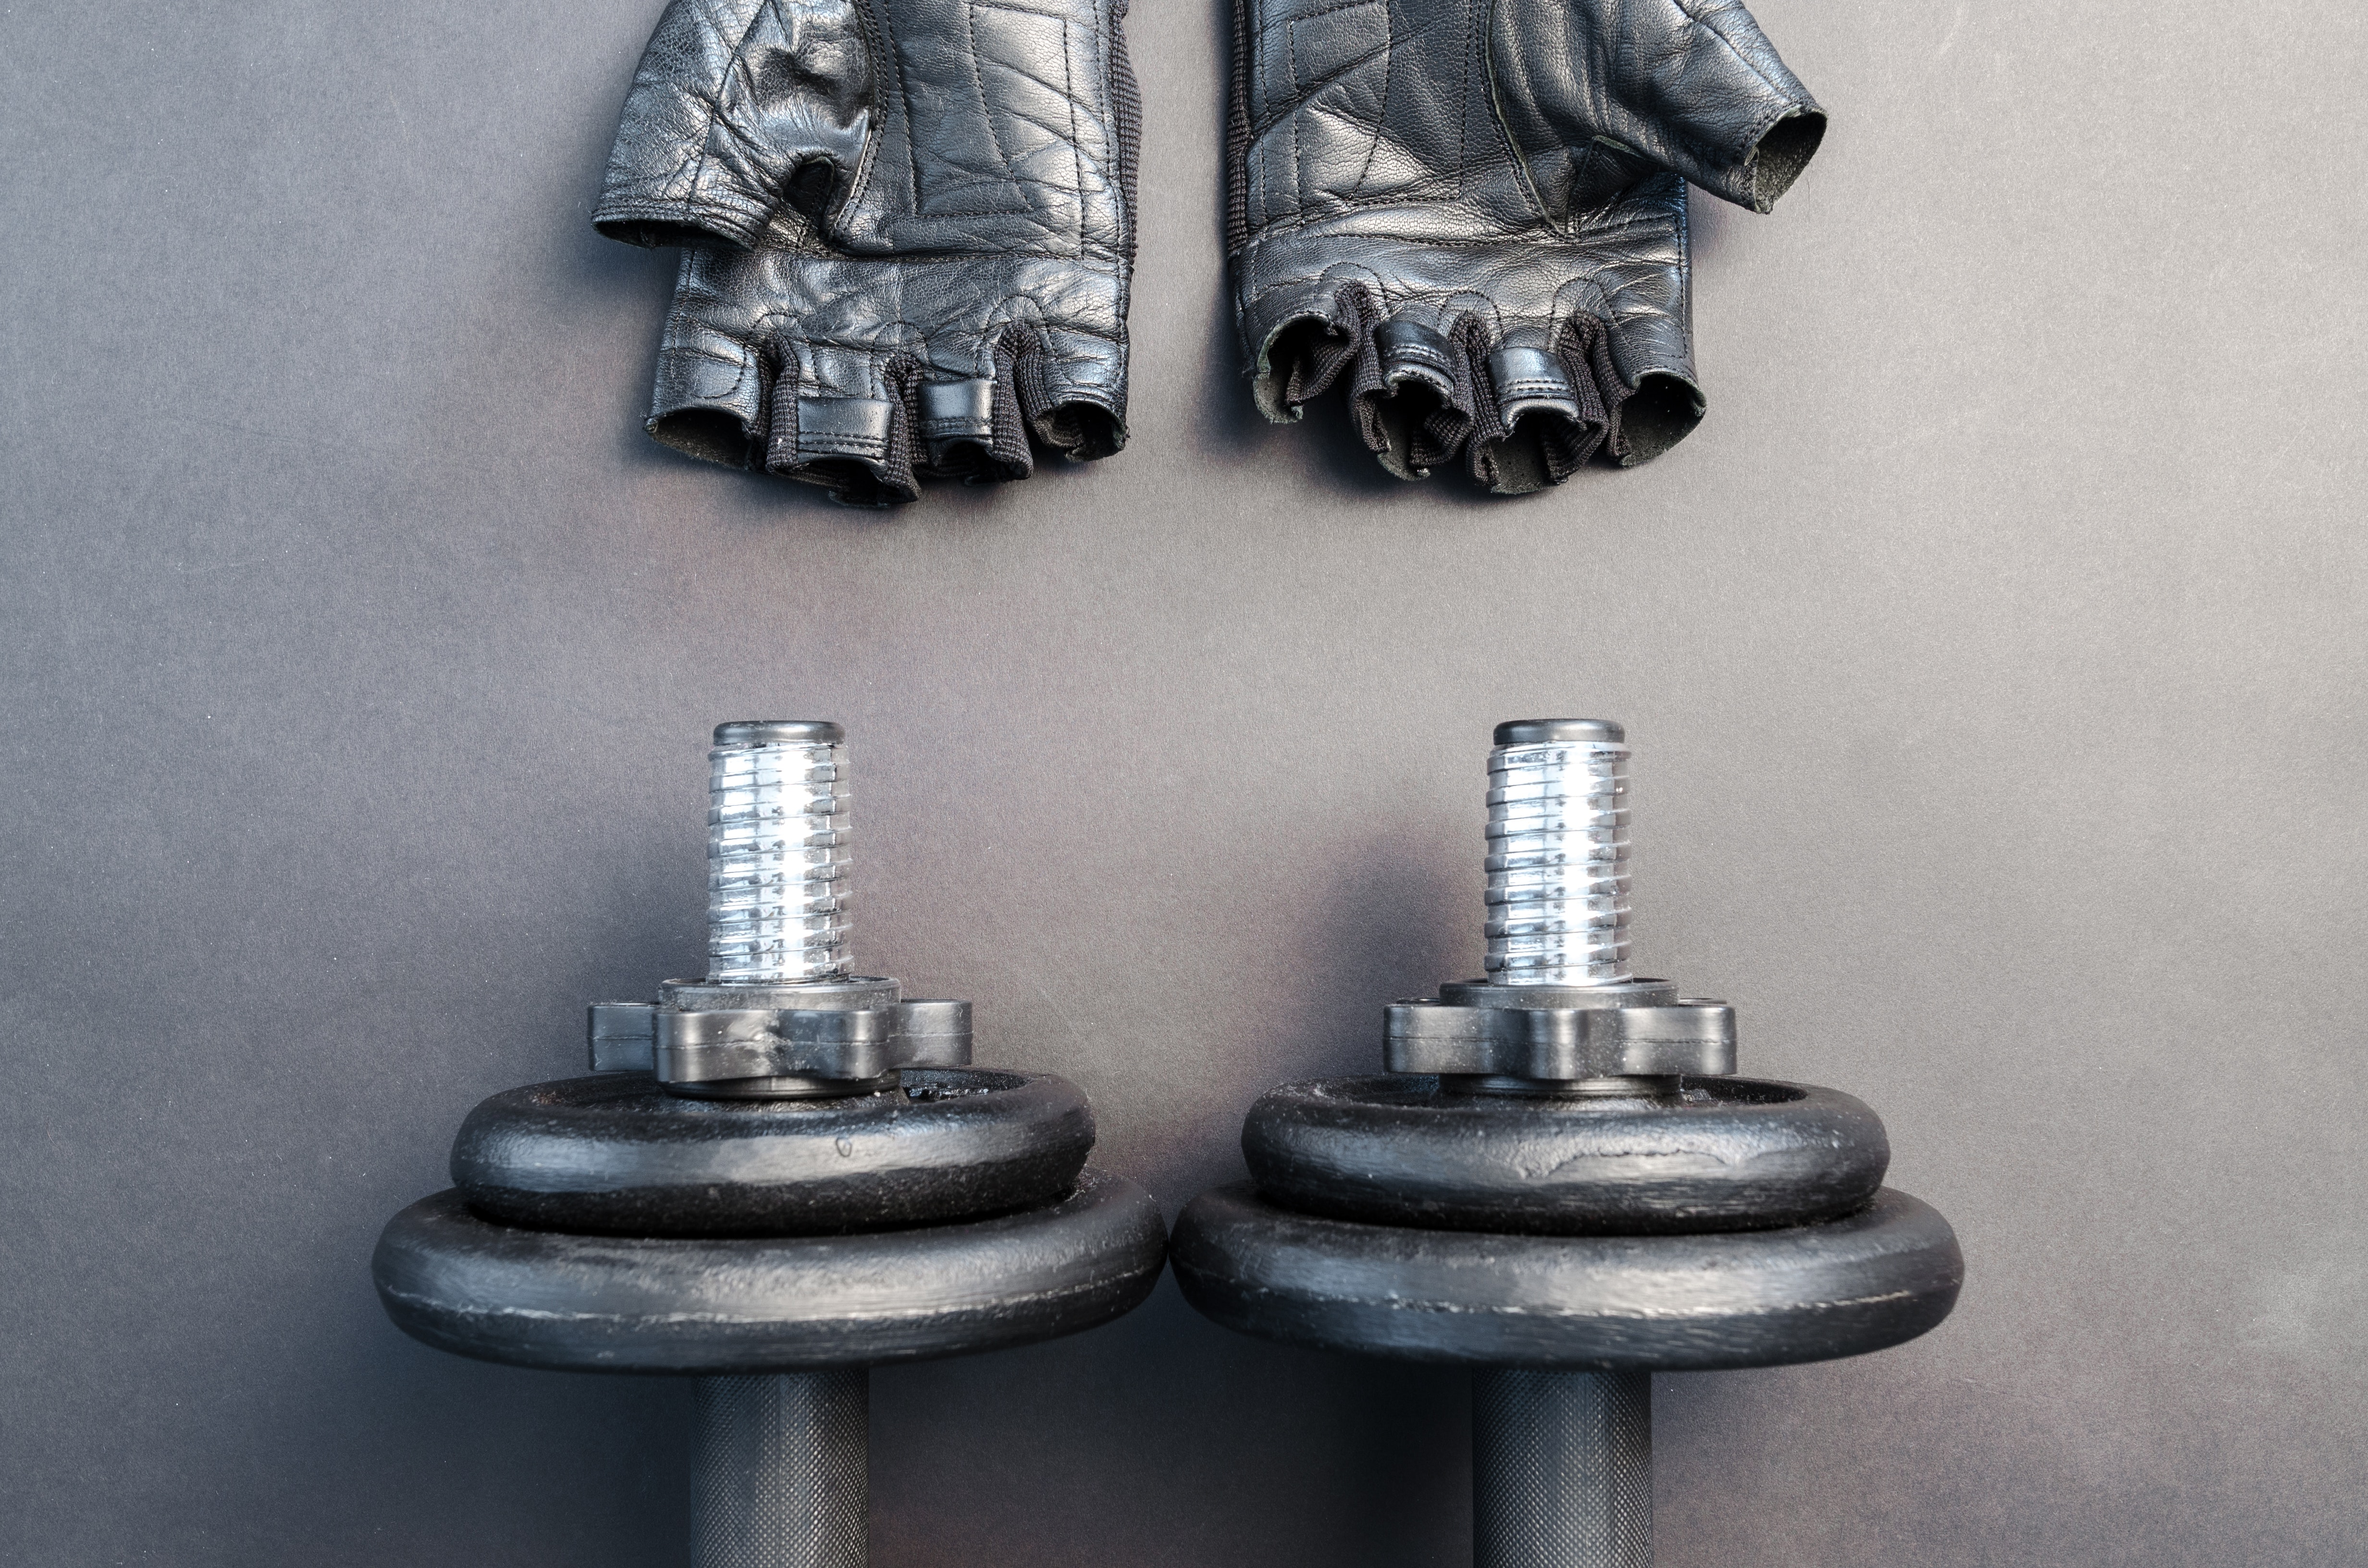 Pair of fingerless gloves and adjustable dumbbells photo